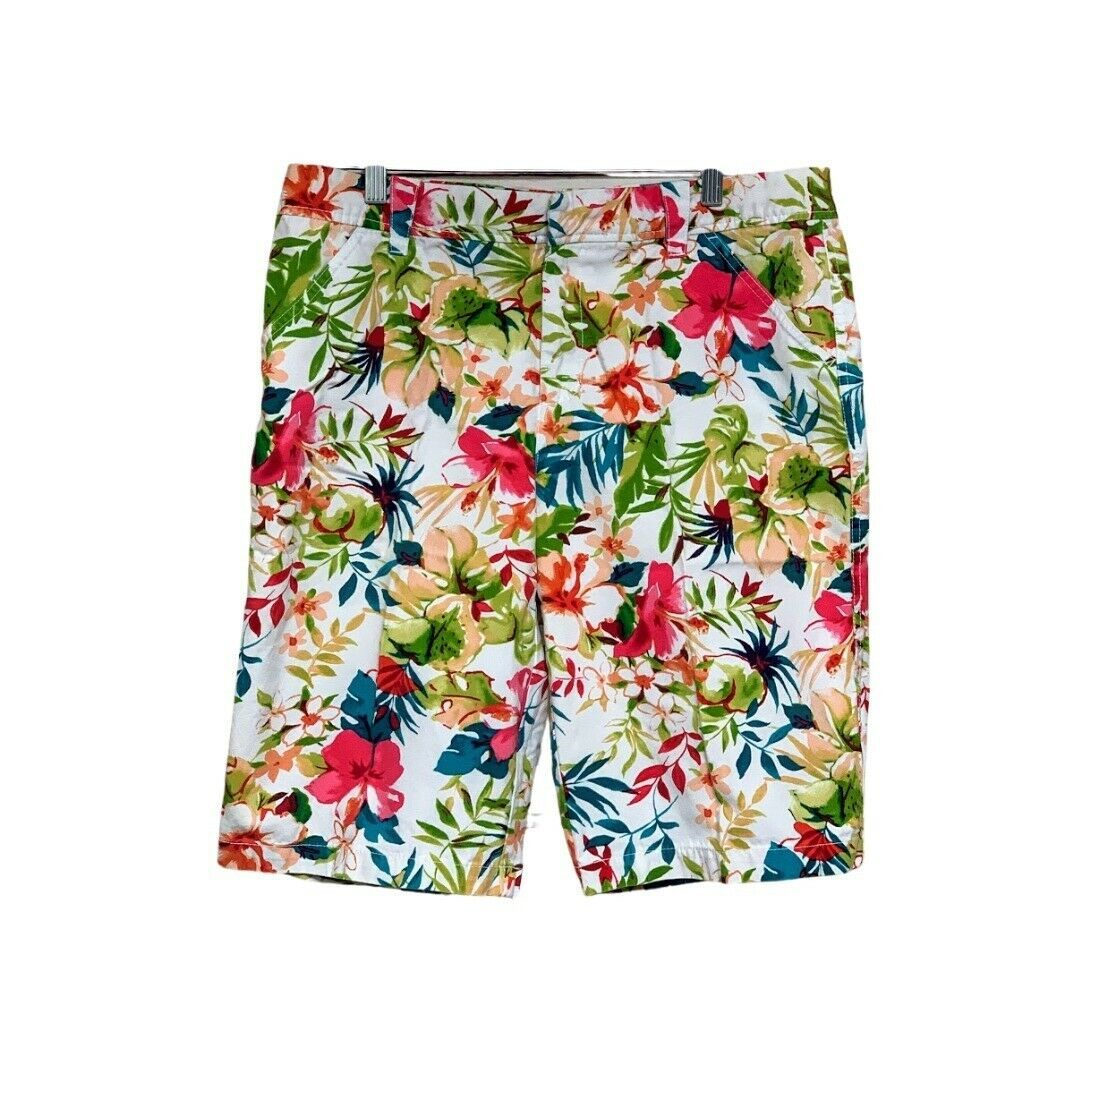 Primary image for Caribbean Joe Womens Floral Shorts Size 14